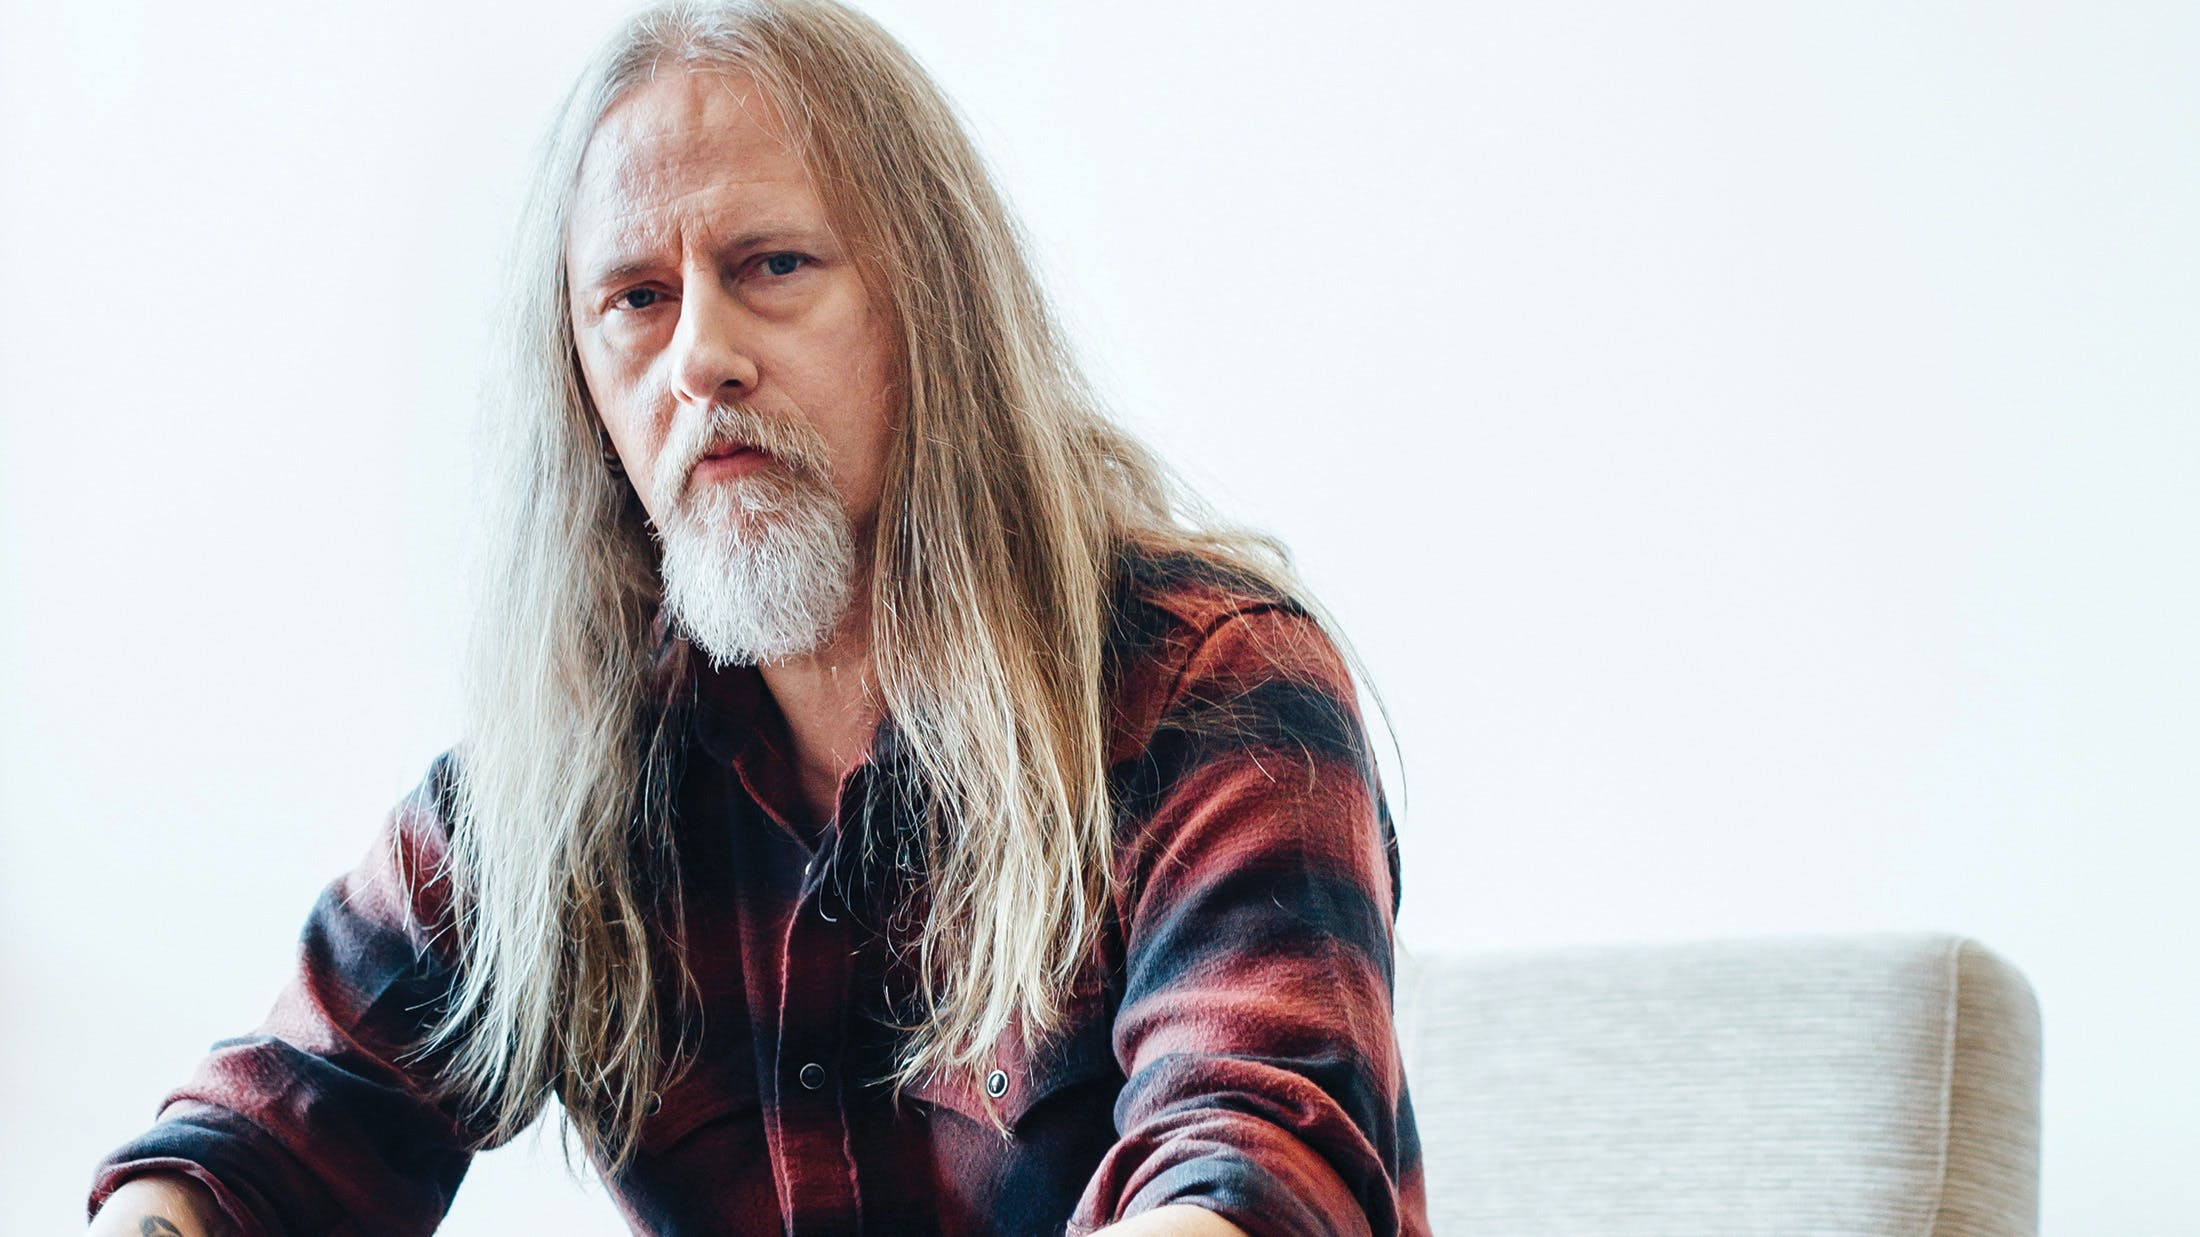 """Jerry Cantrell: """"I Knew What Being A Rock Star Was From An Early Age, I Knew It Wasn't A Safe Path, But I've Always Been A Gambler"""""""